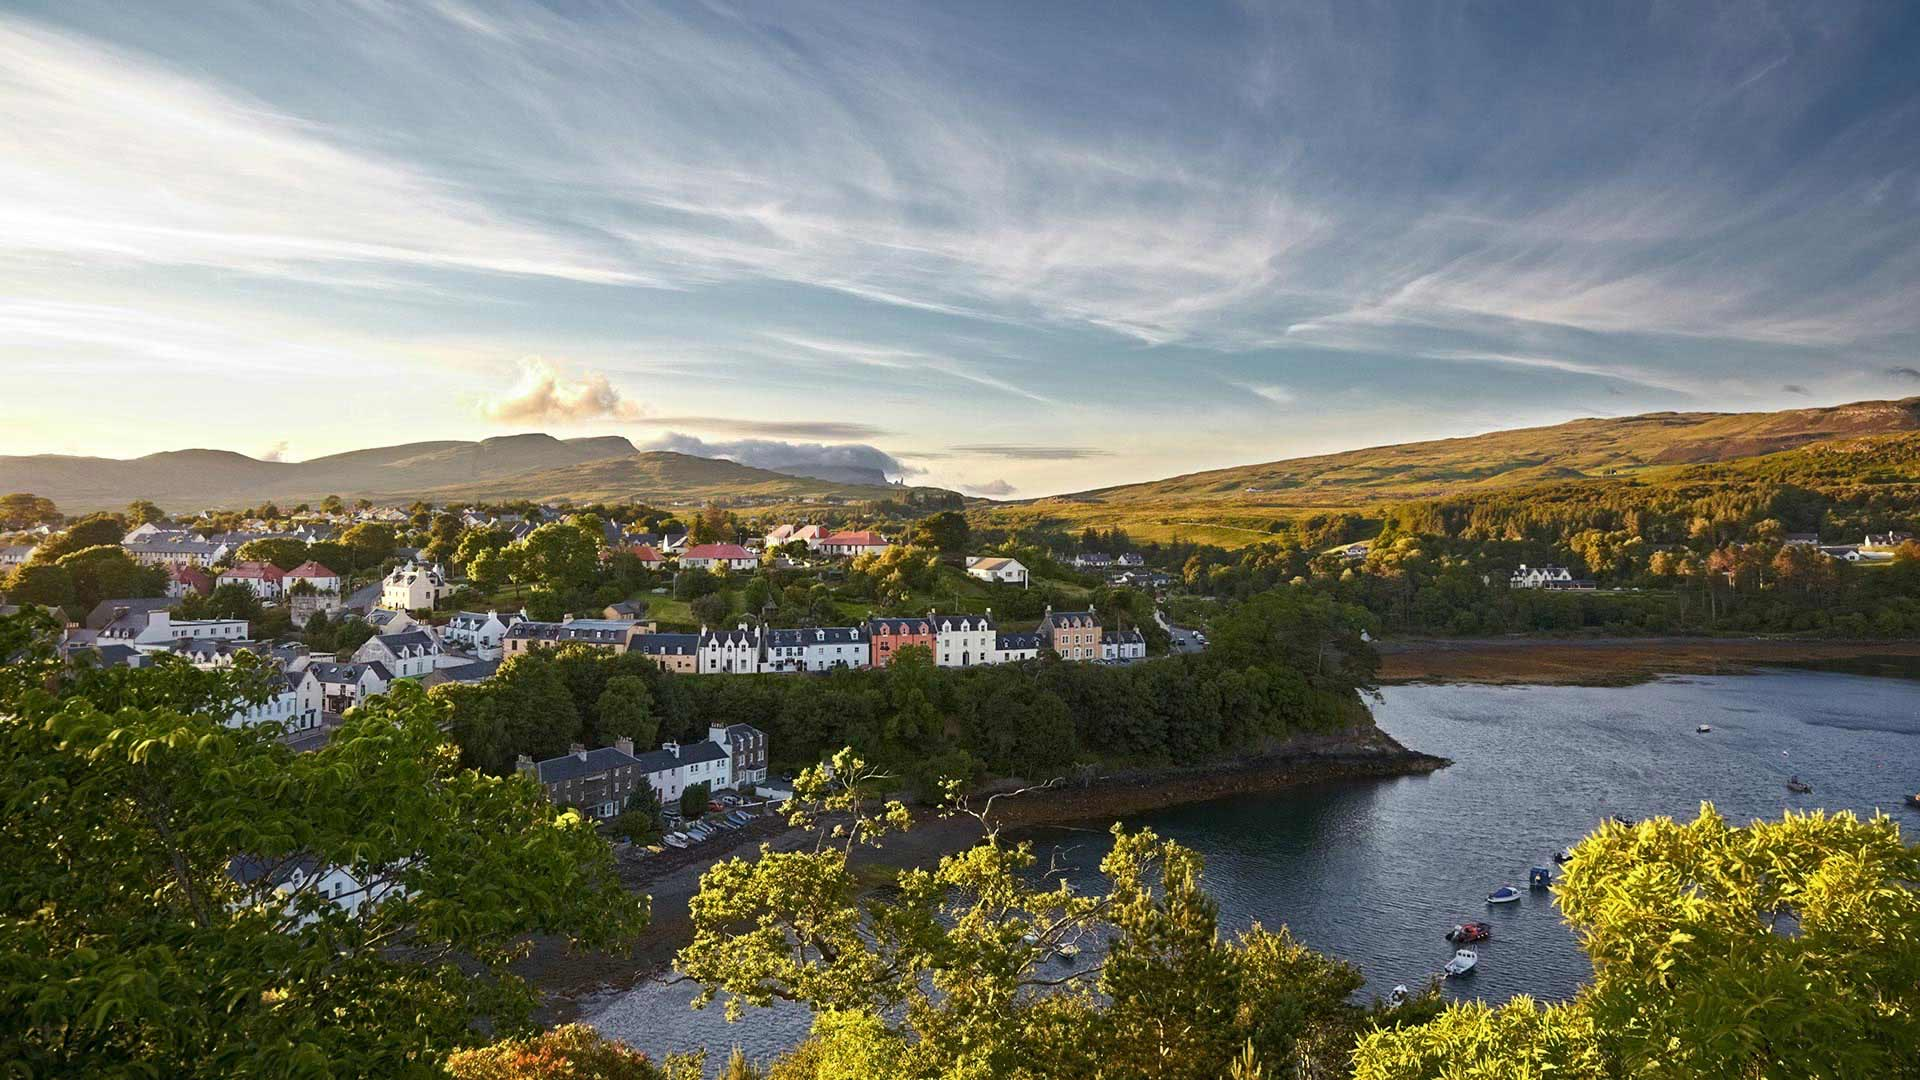 Isle of Skye Exclusive 6 Days 5 Nights Scotland Privately 1920x1080